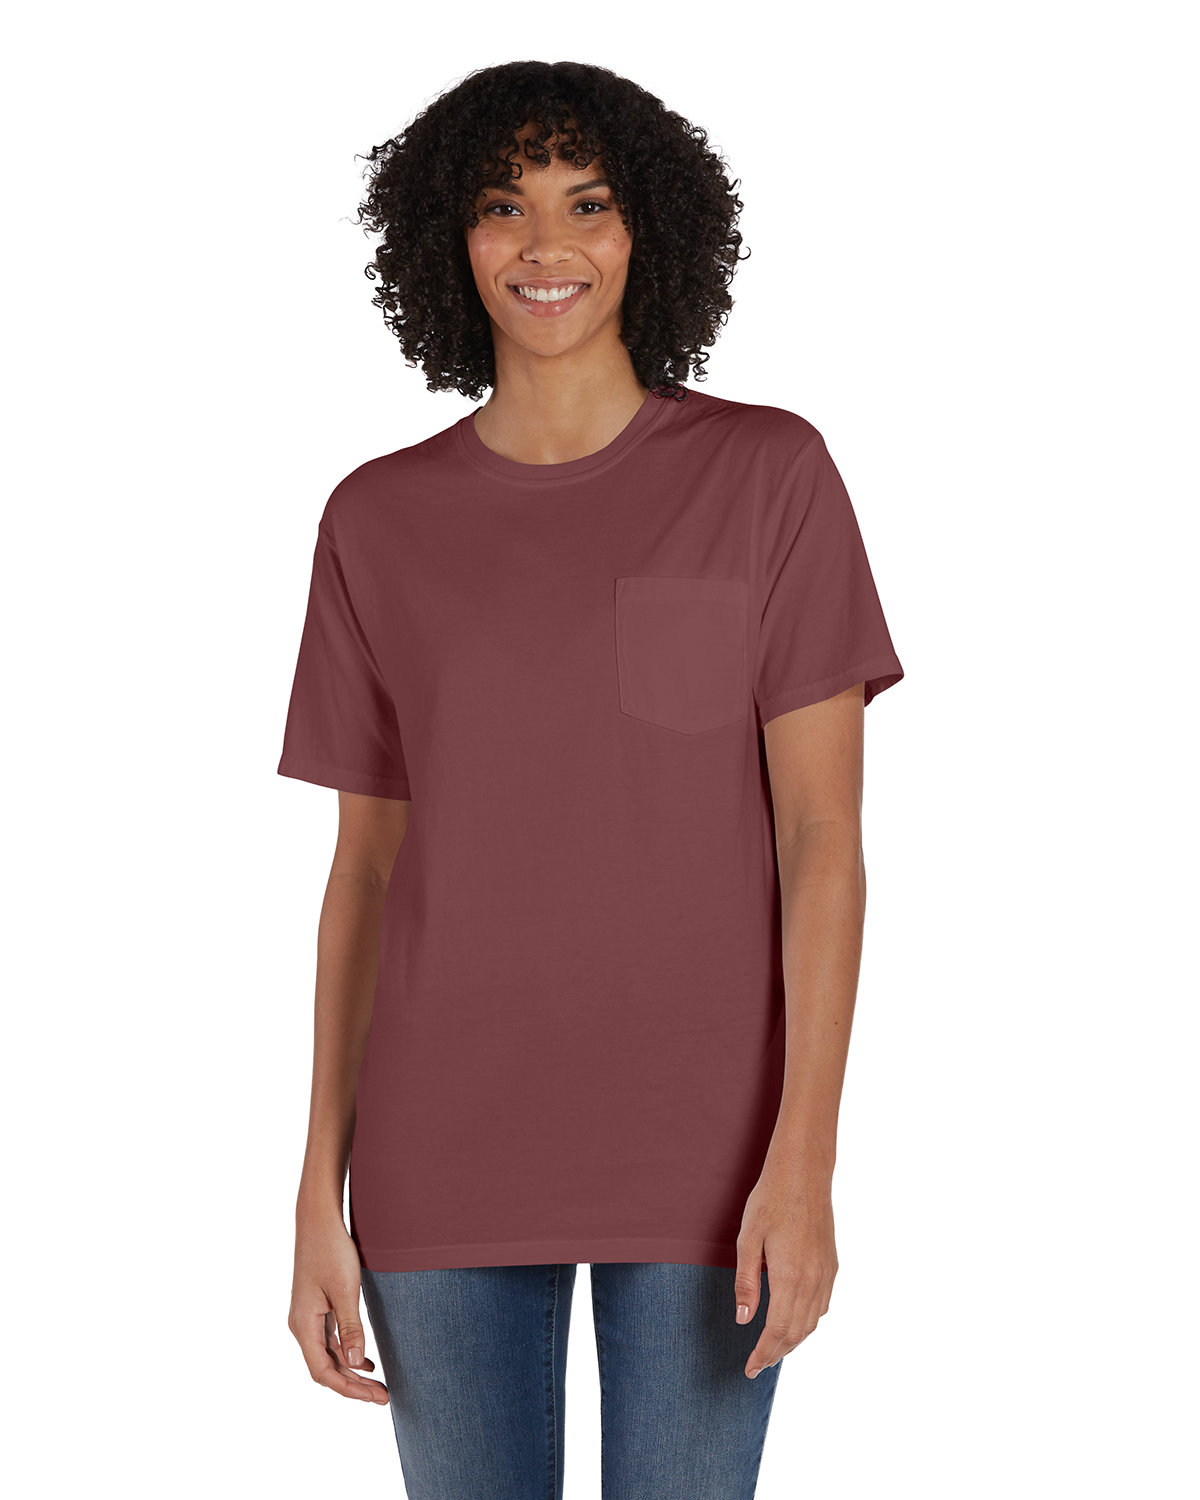 ComfortWash by Hanes Unisex Garment-Dyed T-Shirt with Pocket CAYENNE